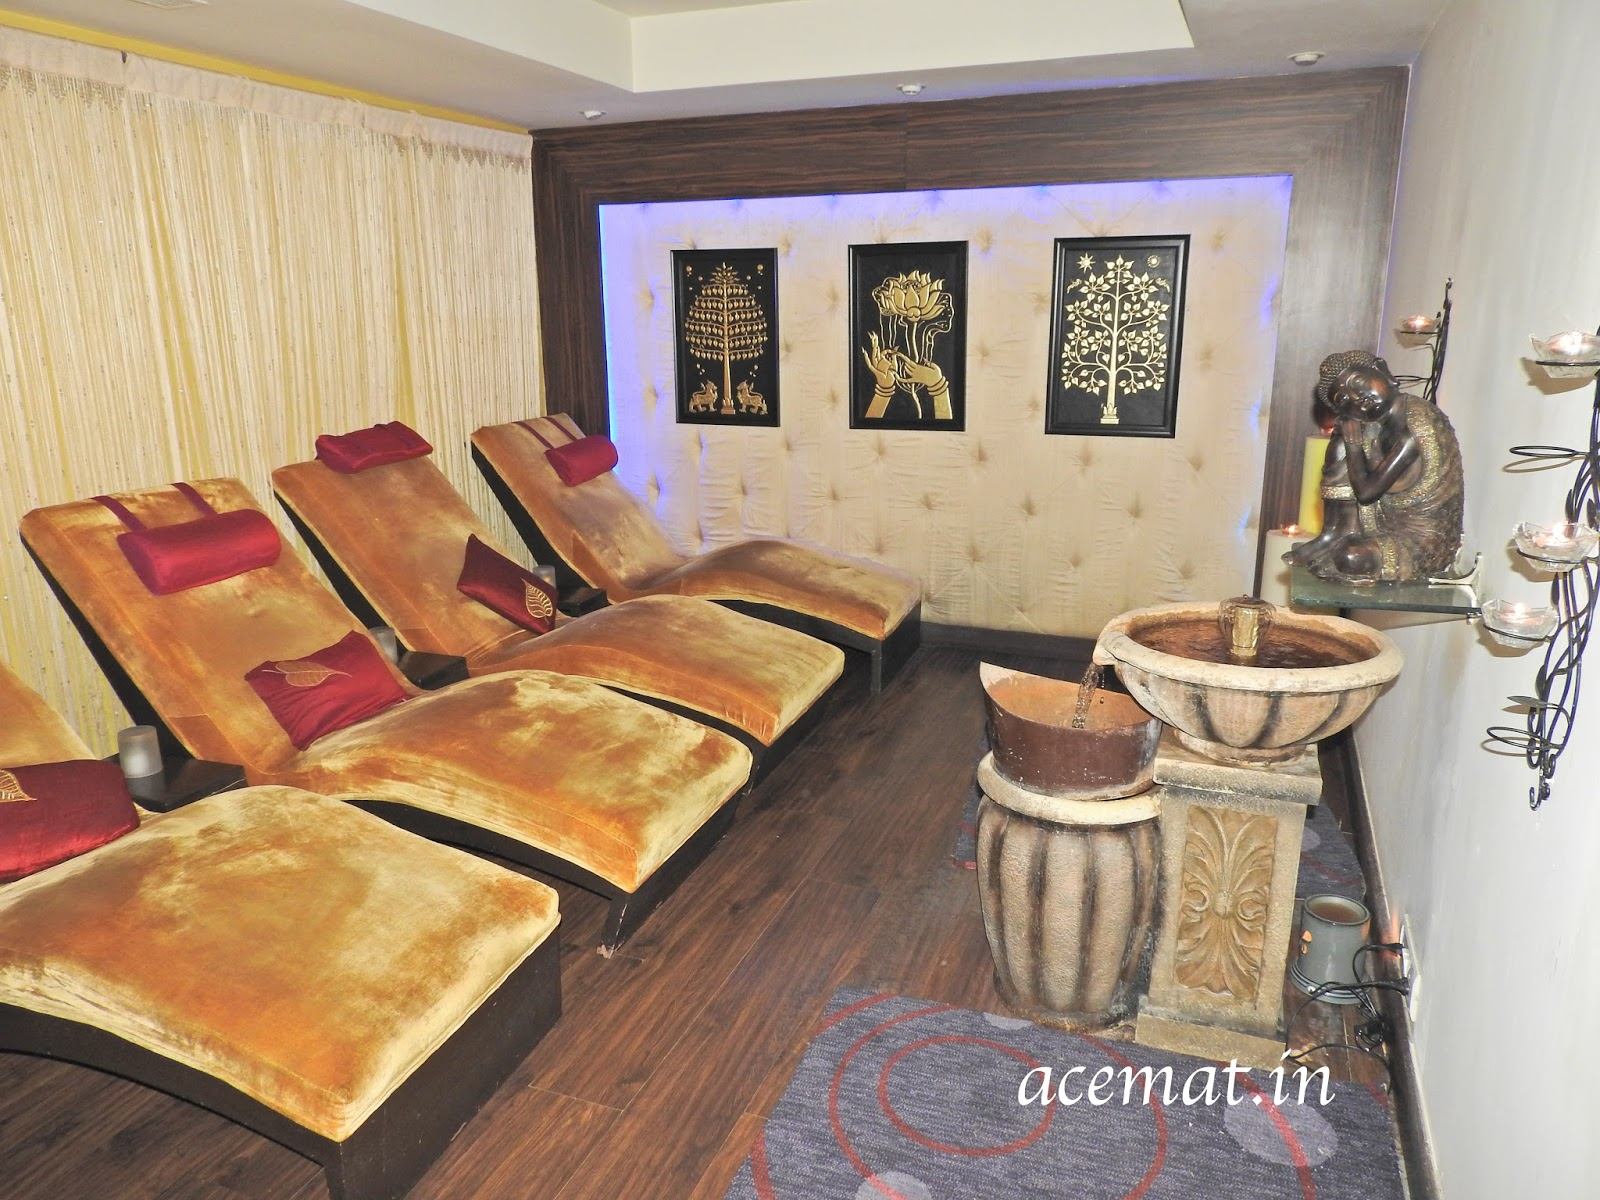 The Ambiance Of The Bodhi Spa Is So Srene That You Already Start Feeling  Replaxed. Water, Flowers, Peace, Noiseless Atmophere, With The Buddha  Meditating ...